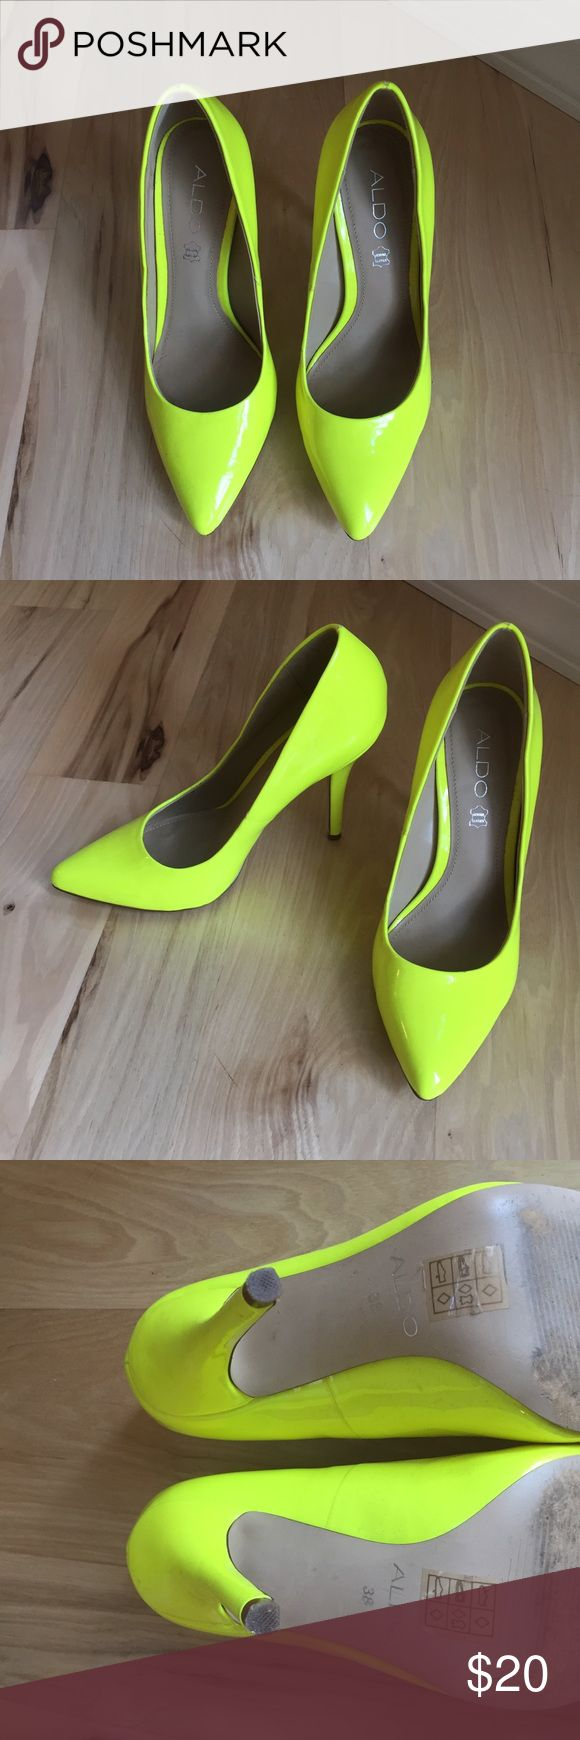 Aldo Pumps Neon yellow pumps that I wore as a bridesmaid and only one or two other occasions. Slightly scratched on the left heel. Size 38 but fit like a 7.5. Aldo Shoes Heels